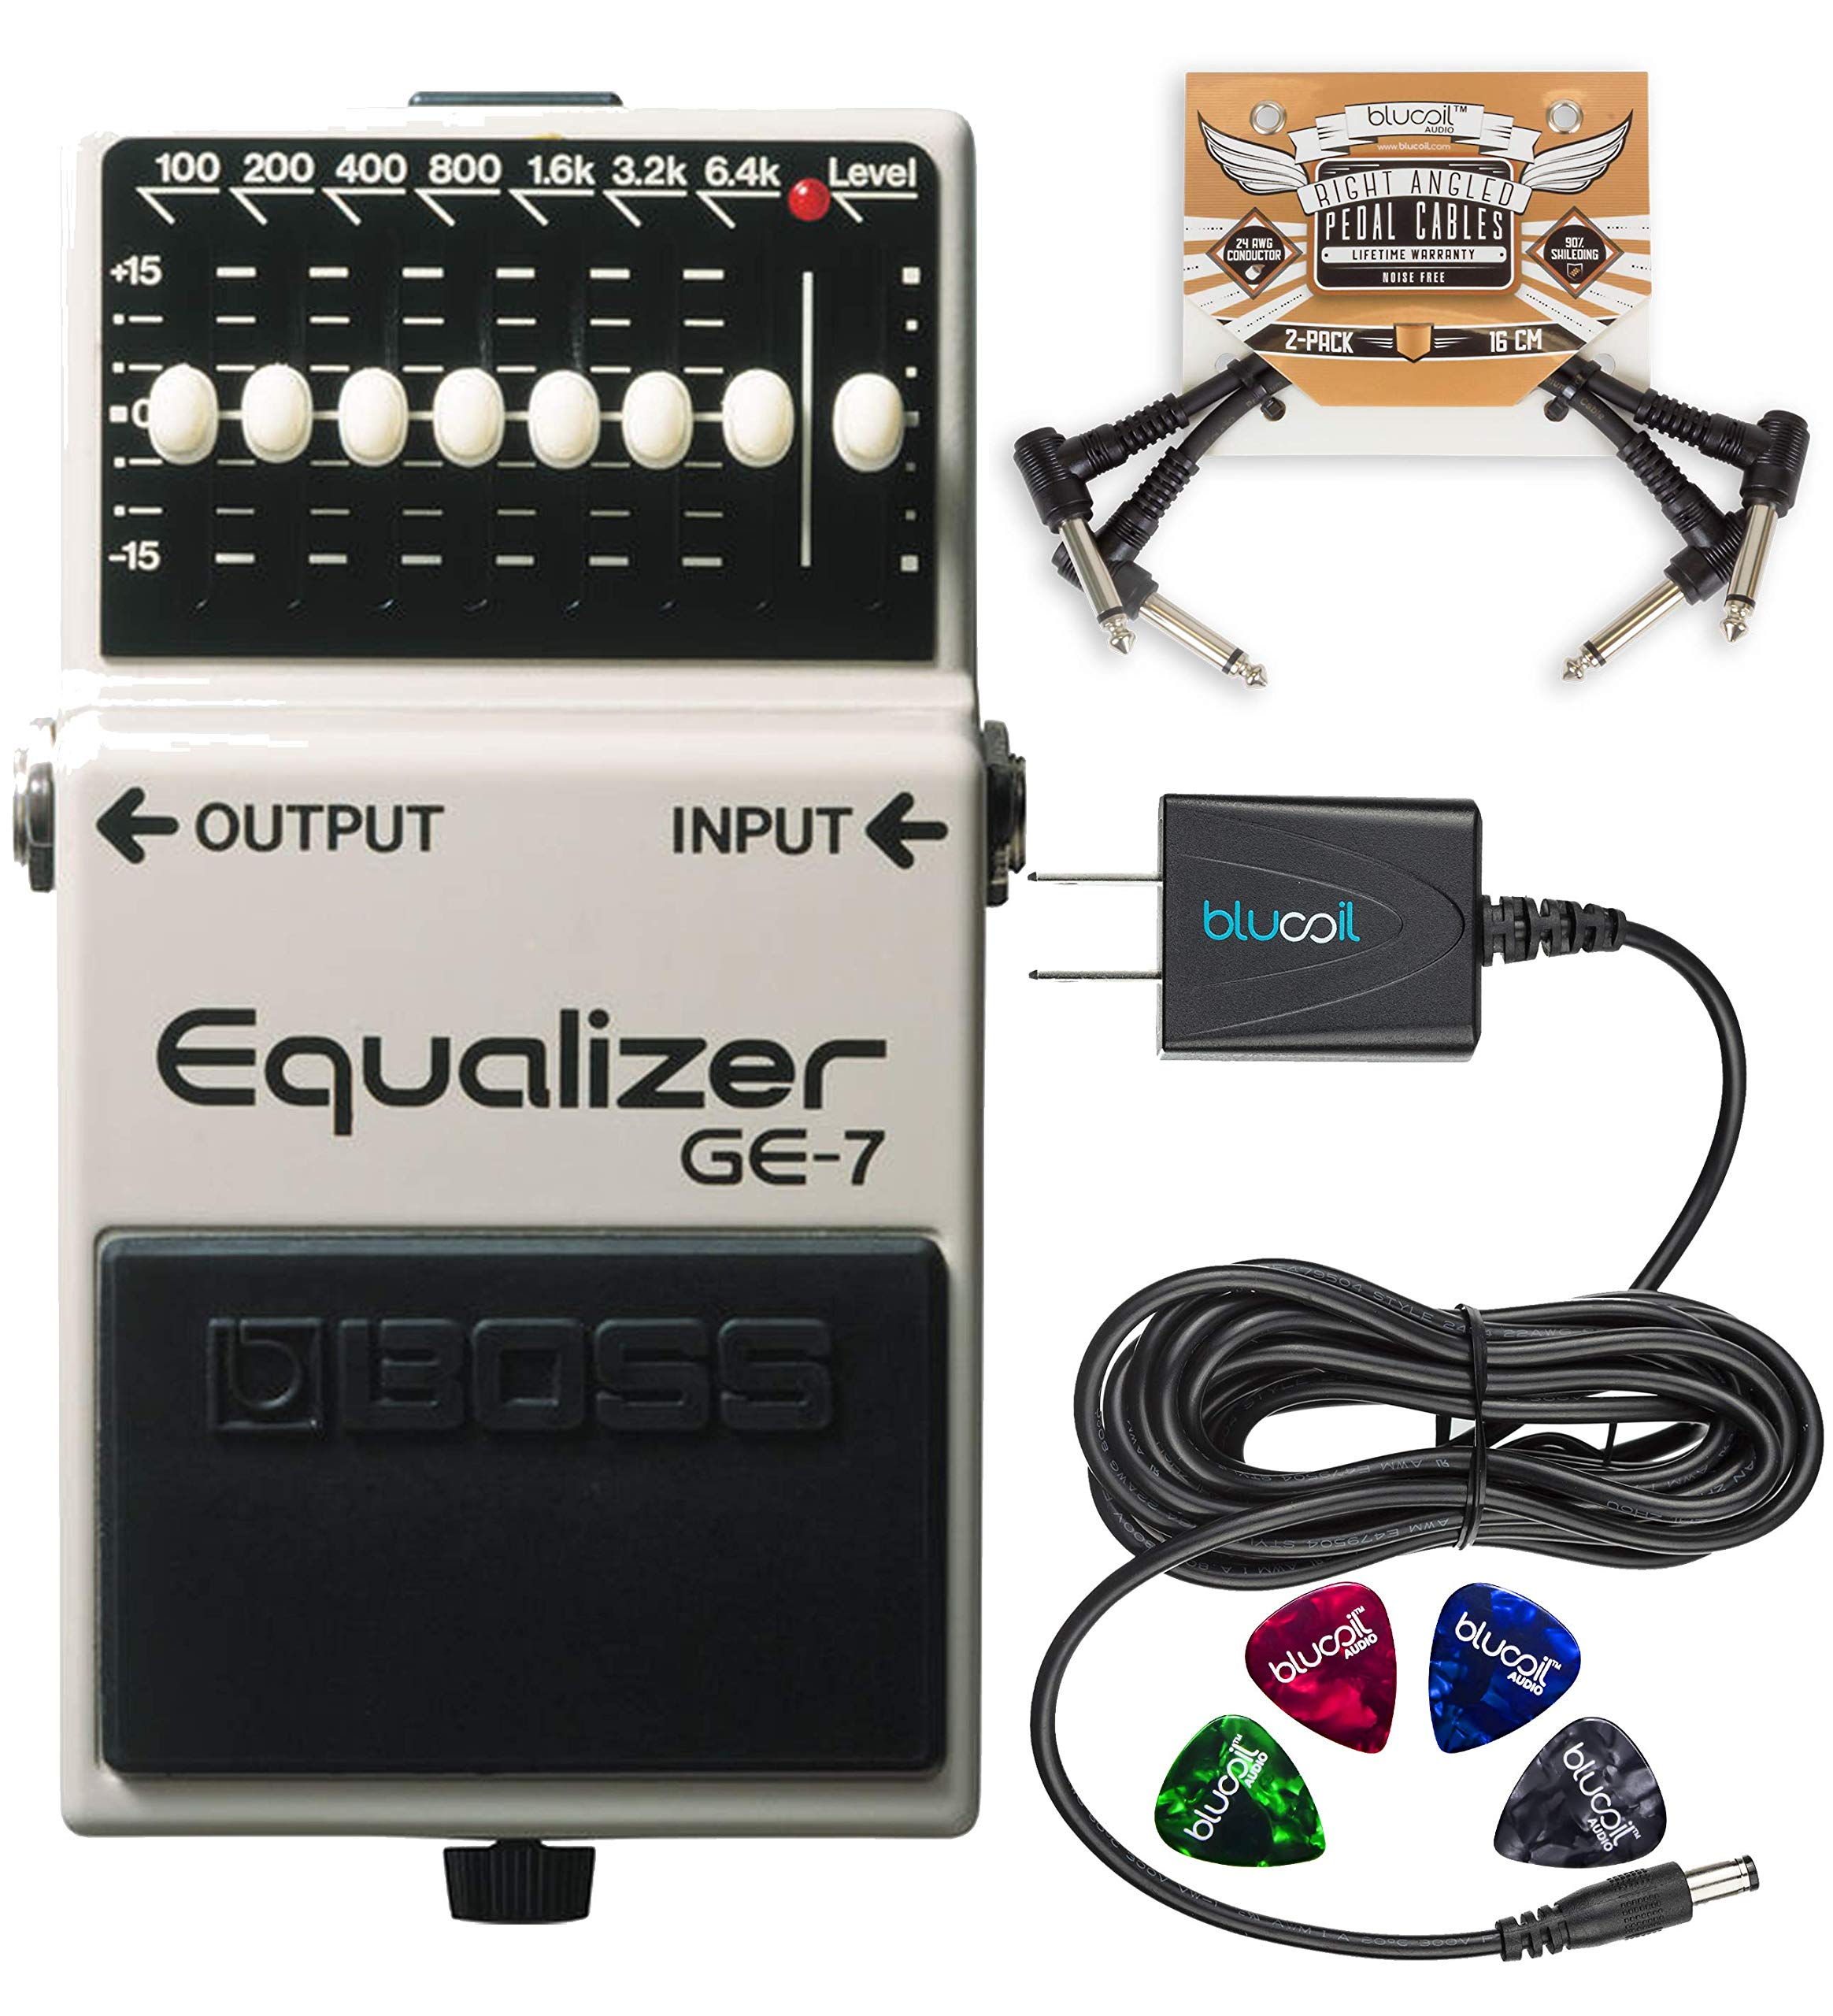 Equalizer Blucoil Circuit Protection Celluloid